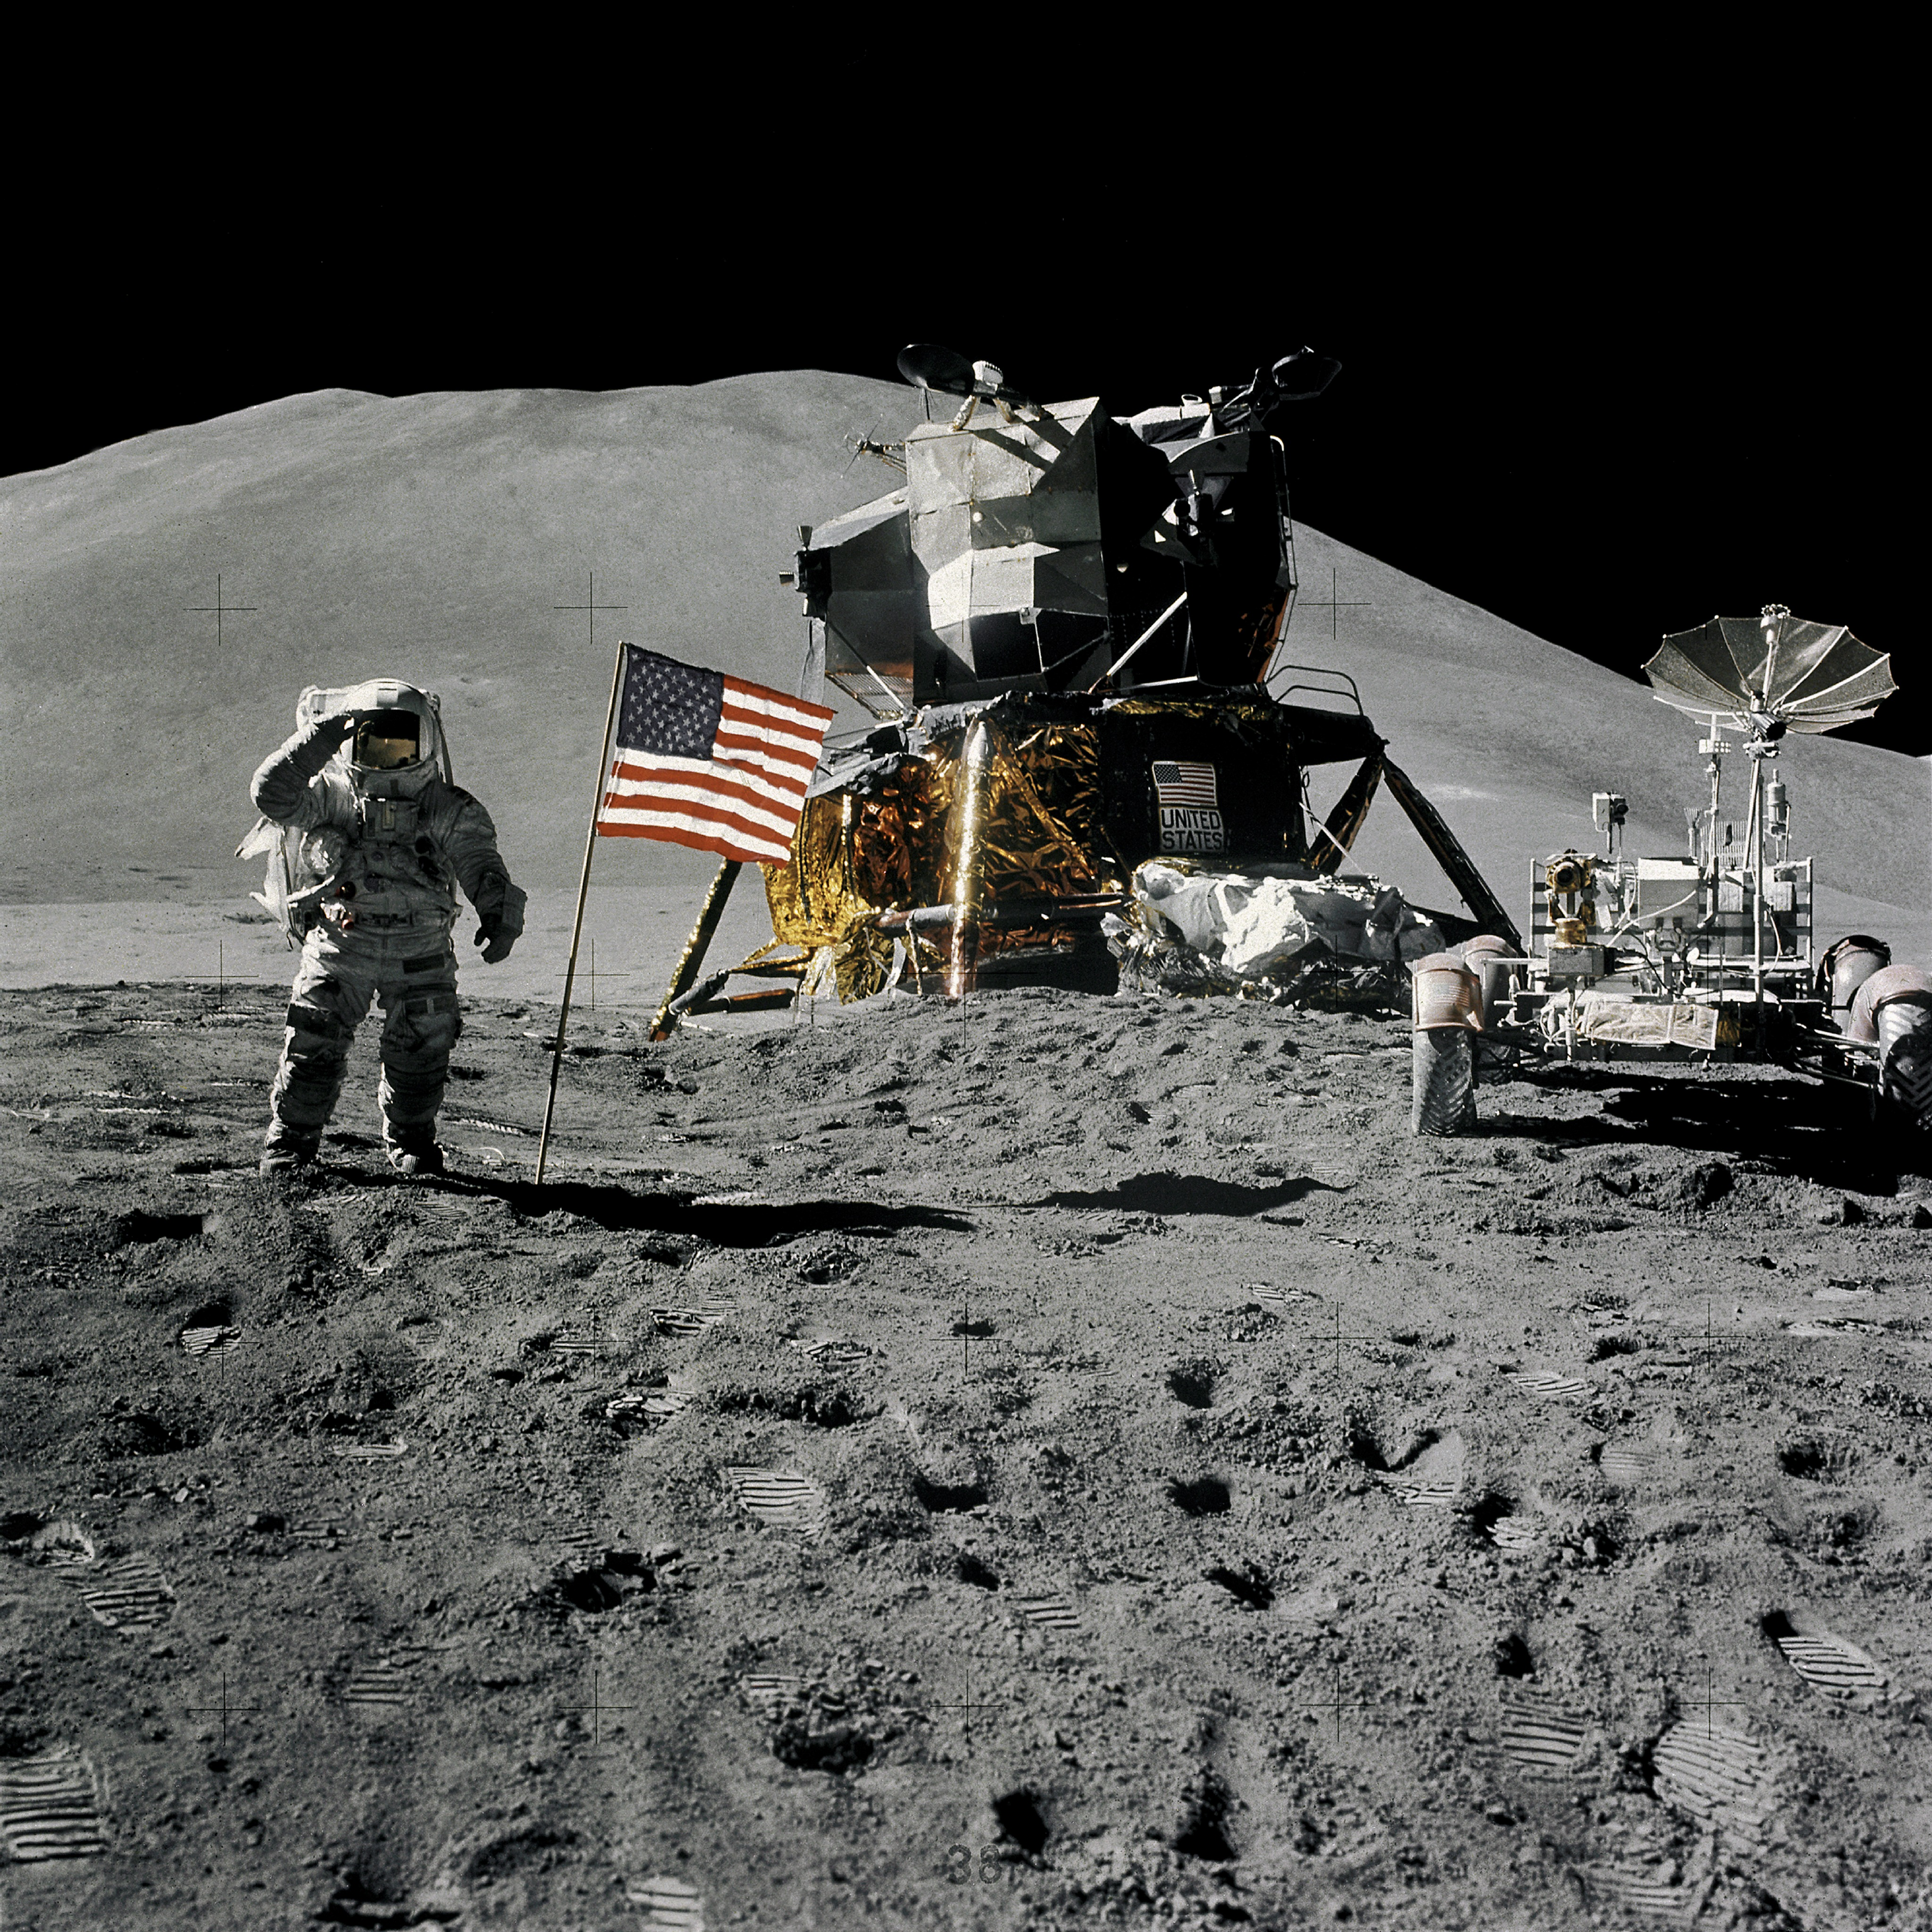 Astronaut James B. Irwin, lunar module pilot, gives a military salute while standing beside the deployed United States flag during the Apollo 15